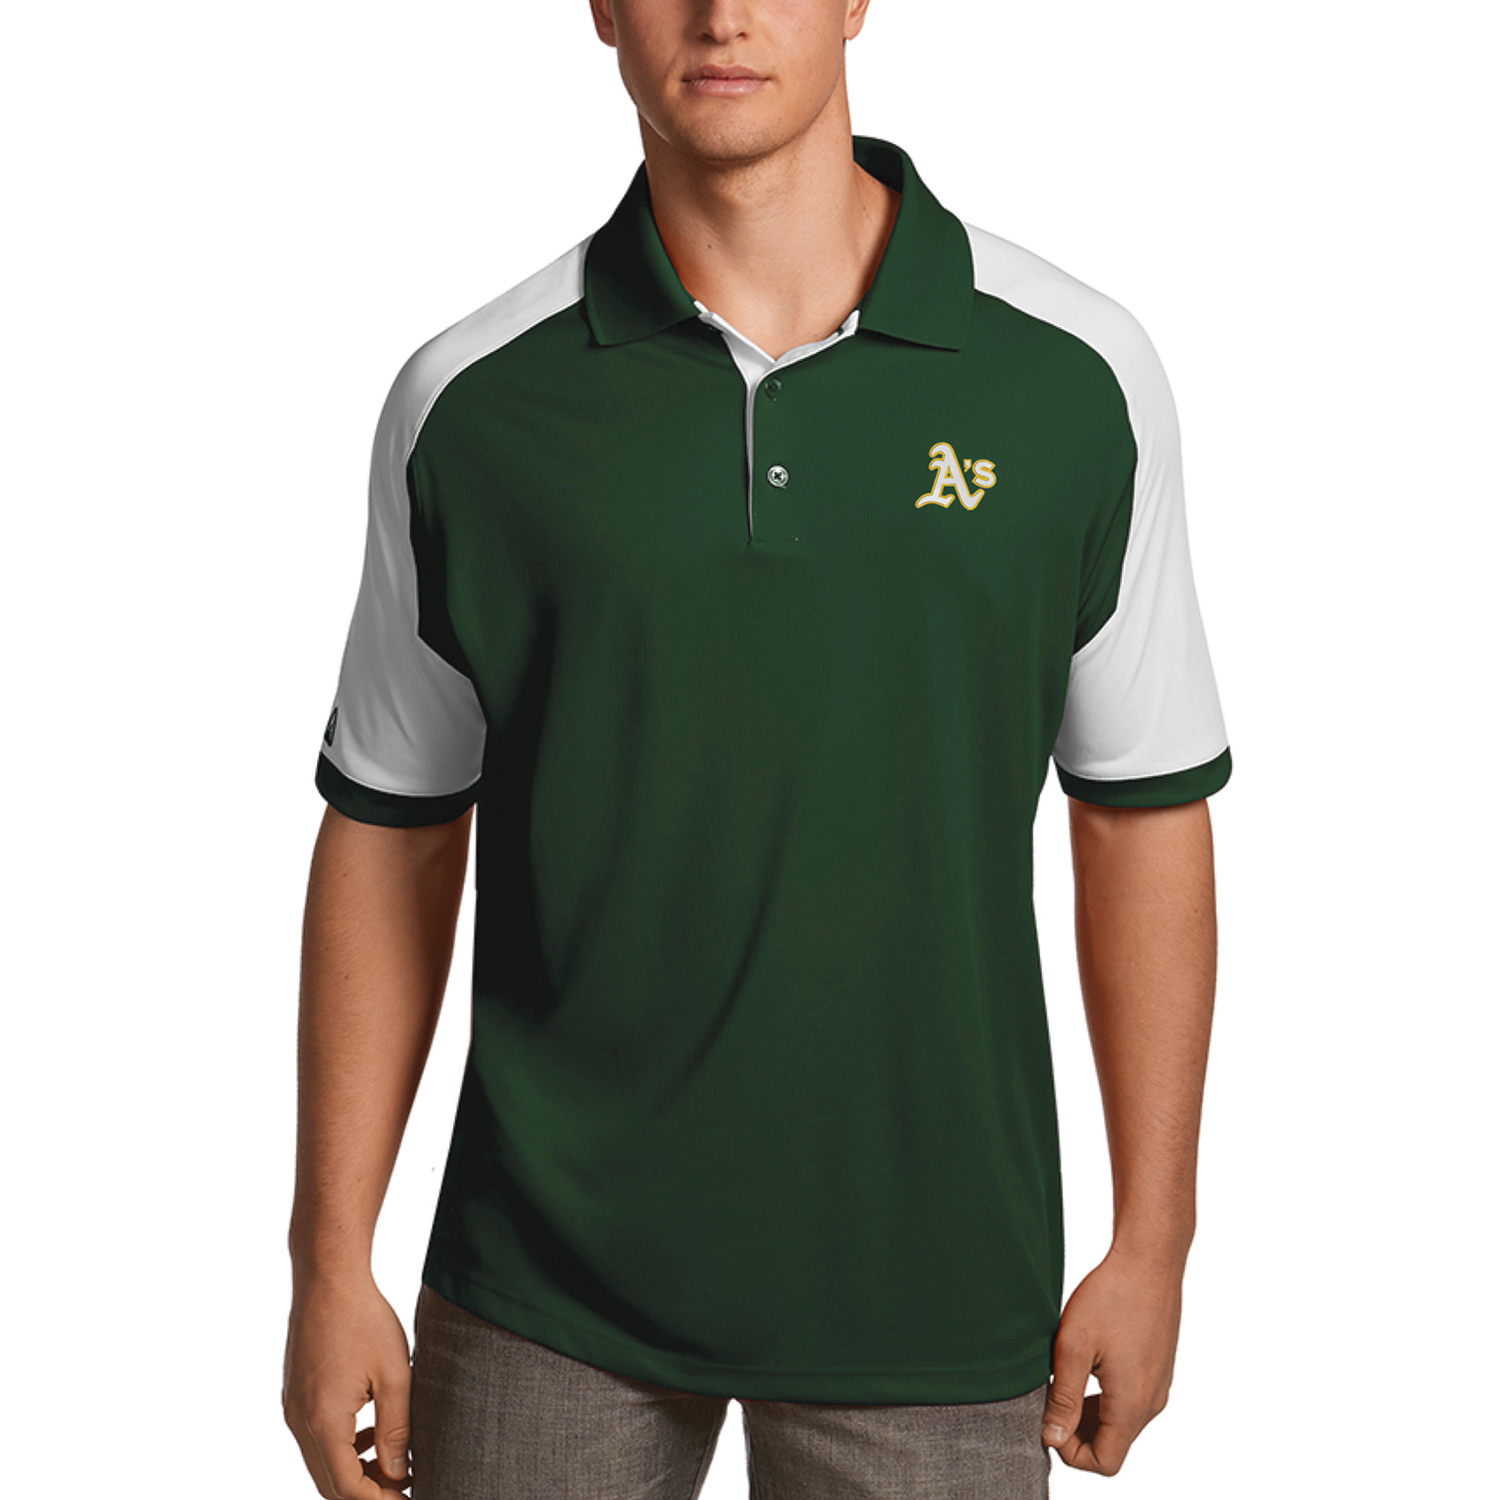 Oakland Athletics Antigua Century Polo - Green/White